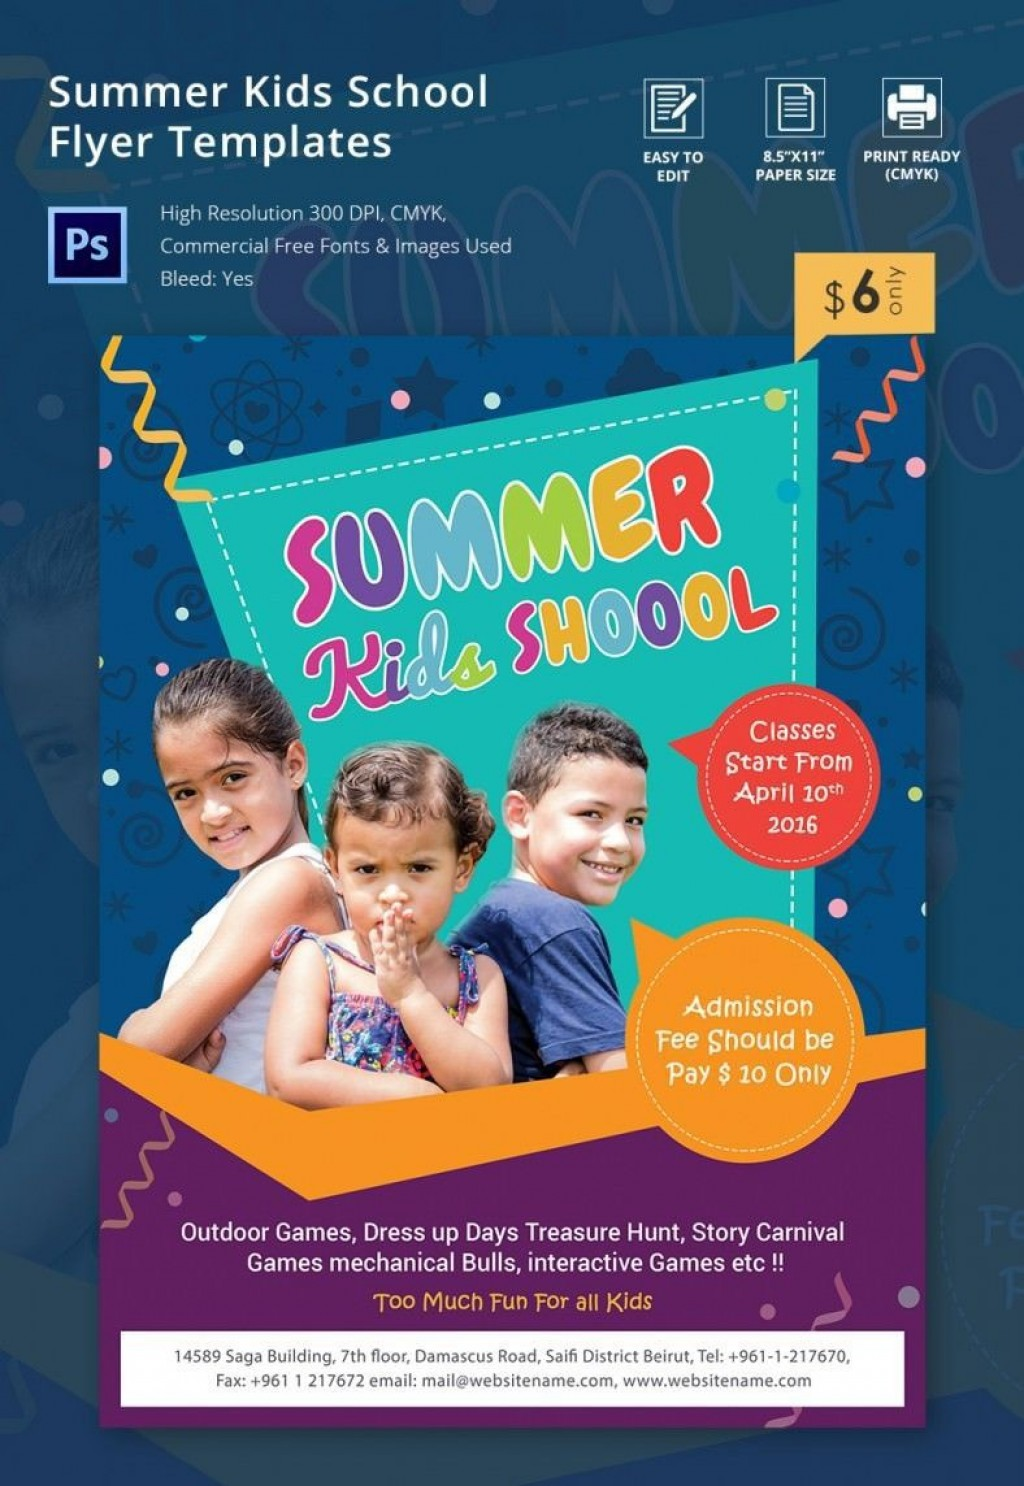 000 Best Free School Flyer Template Word Image  For Microsoft Education Back ToLarge